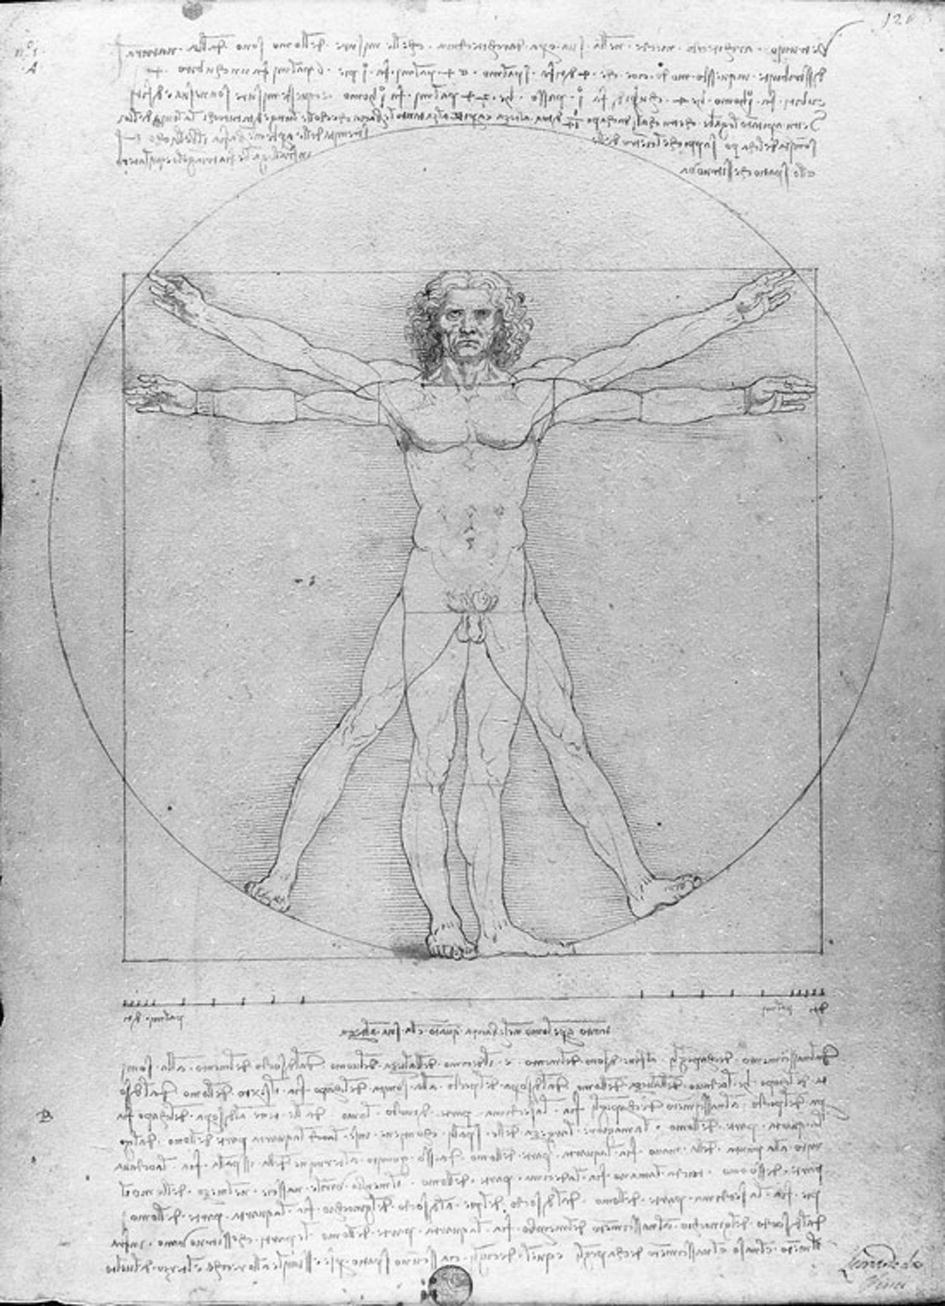 The Vitruvian Man of Leonardo da Vinci as a Representation